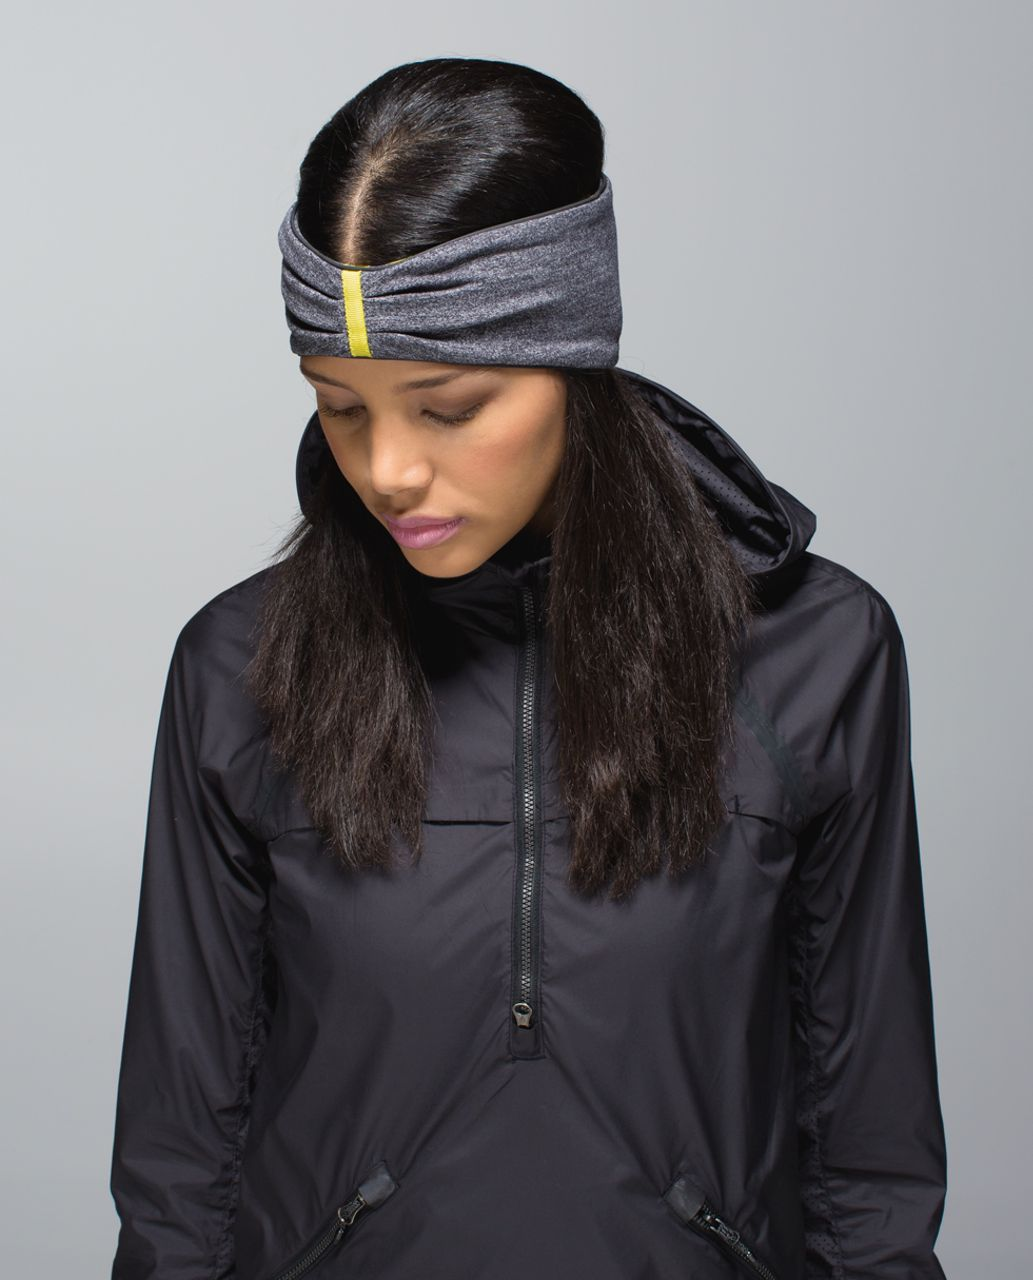 Lululemon Run With Me Ear Warmer - Hyper Stripe Heathered Black Almost Pear / Heathered Black